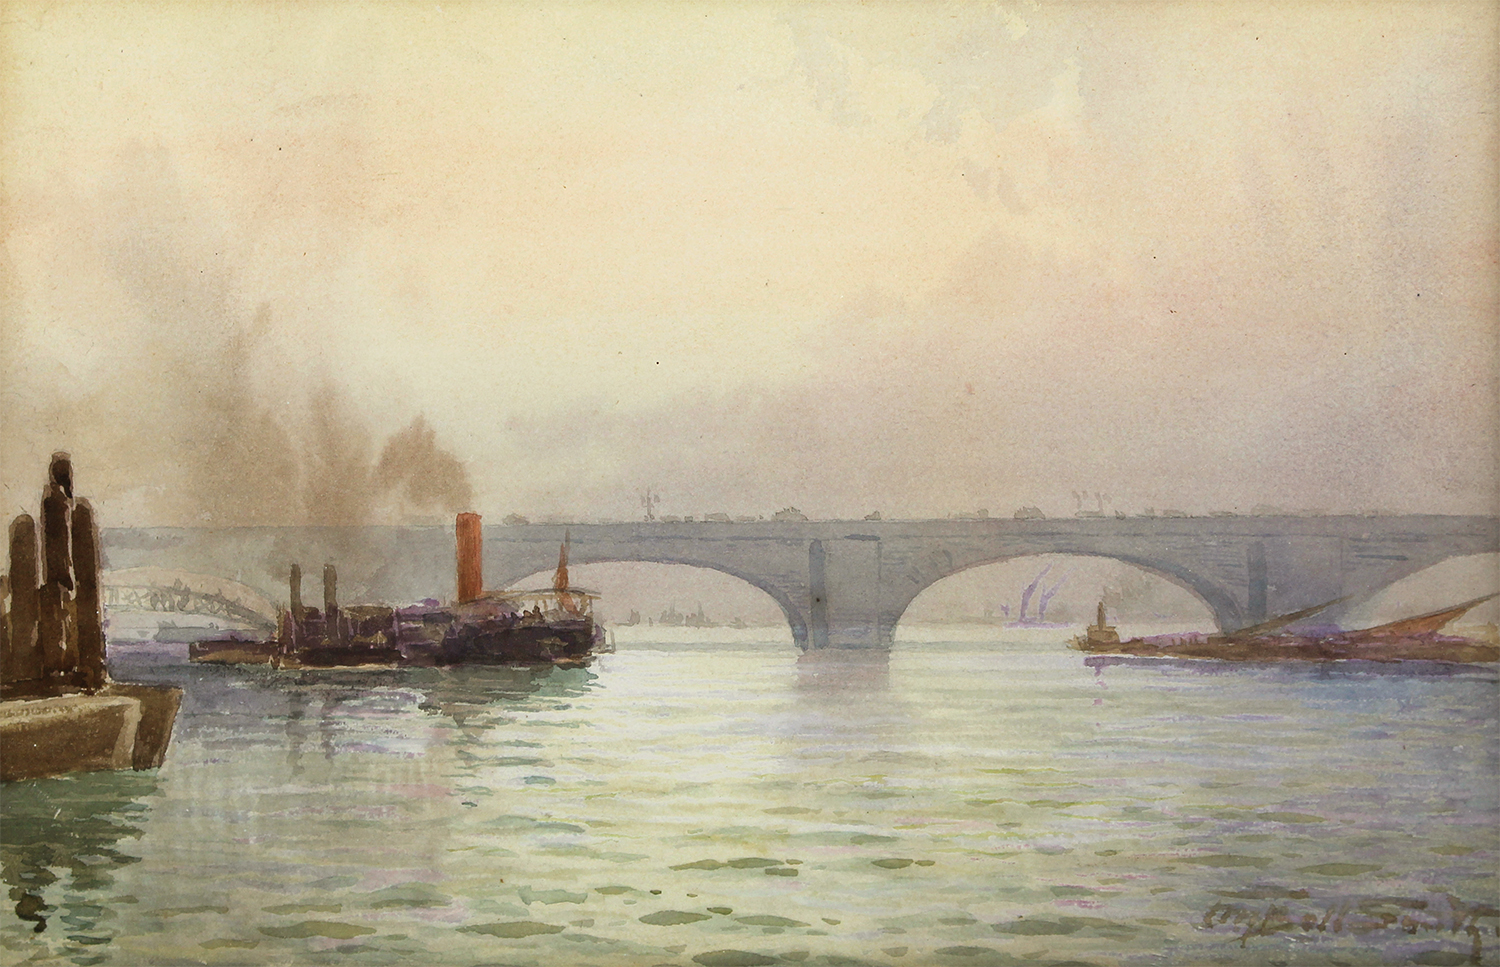 Frederic Marlett Bell-Smith (Canadian 1846-1923) On the Thames